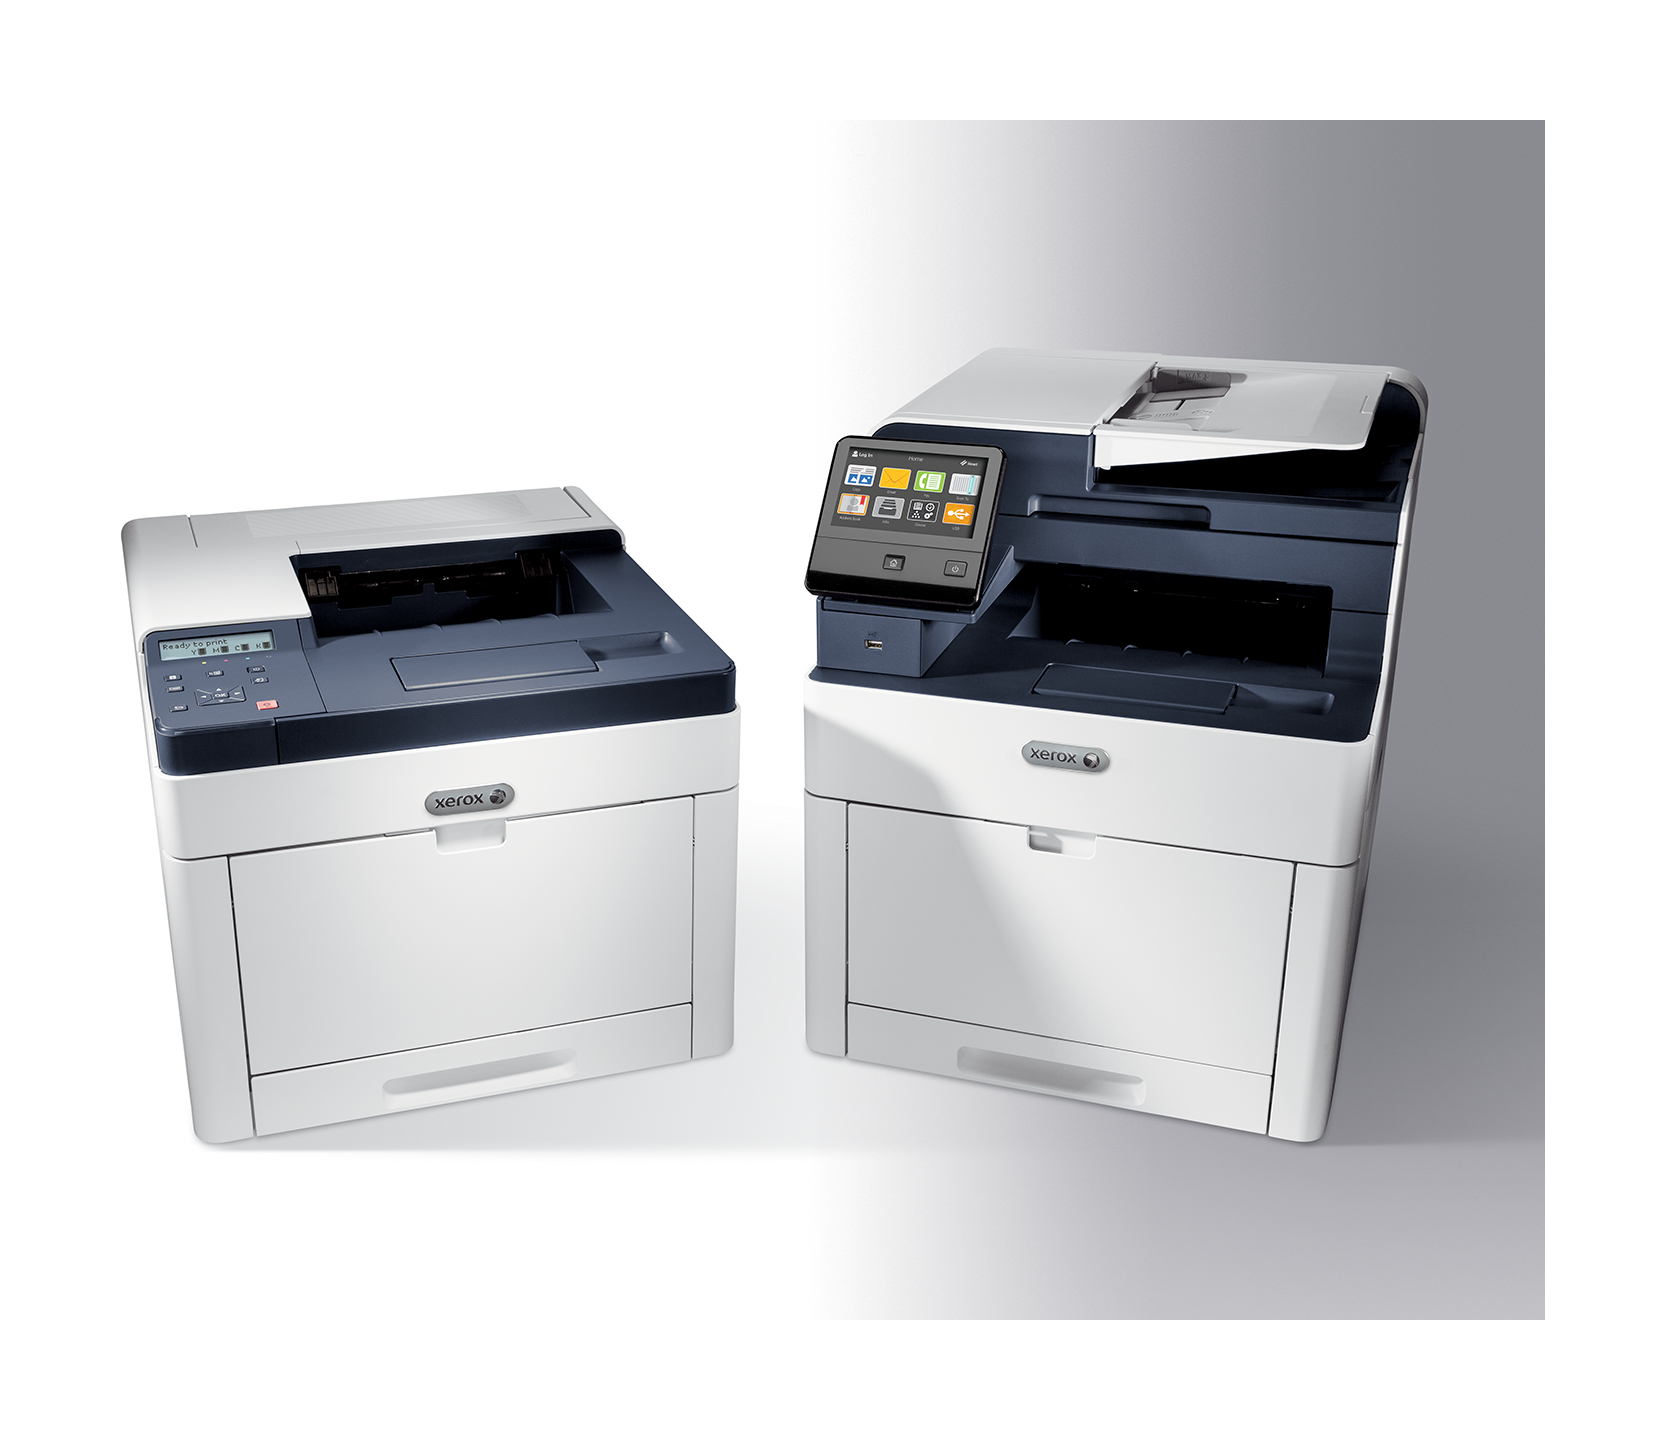 scan itm printer all scanner machine fax in copier office epson wireless laser one